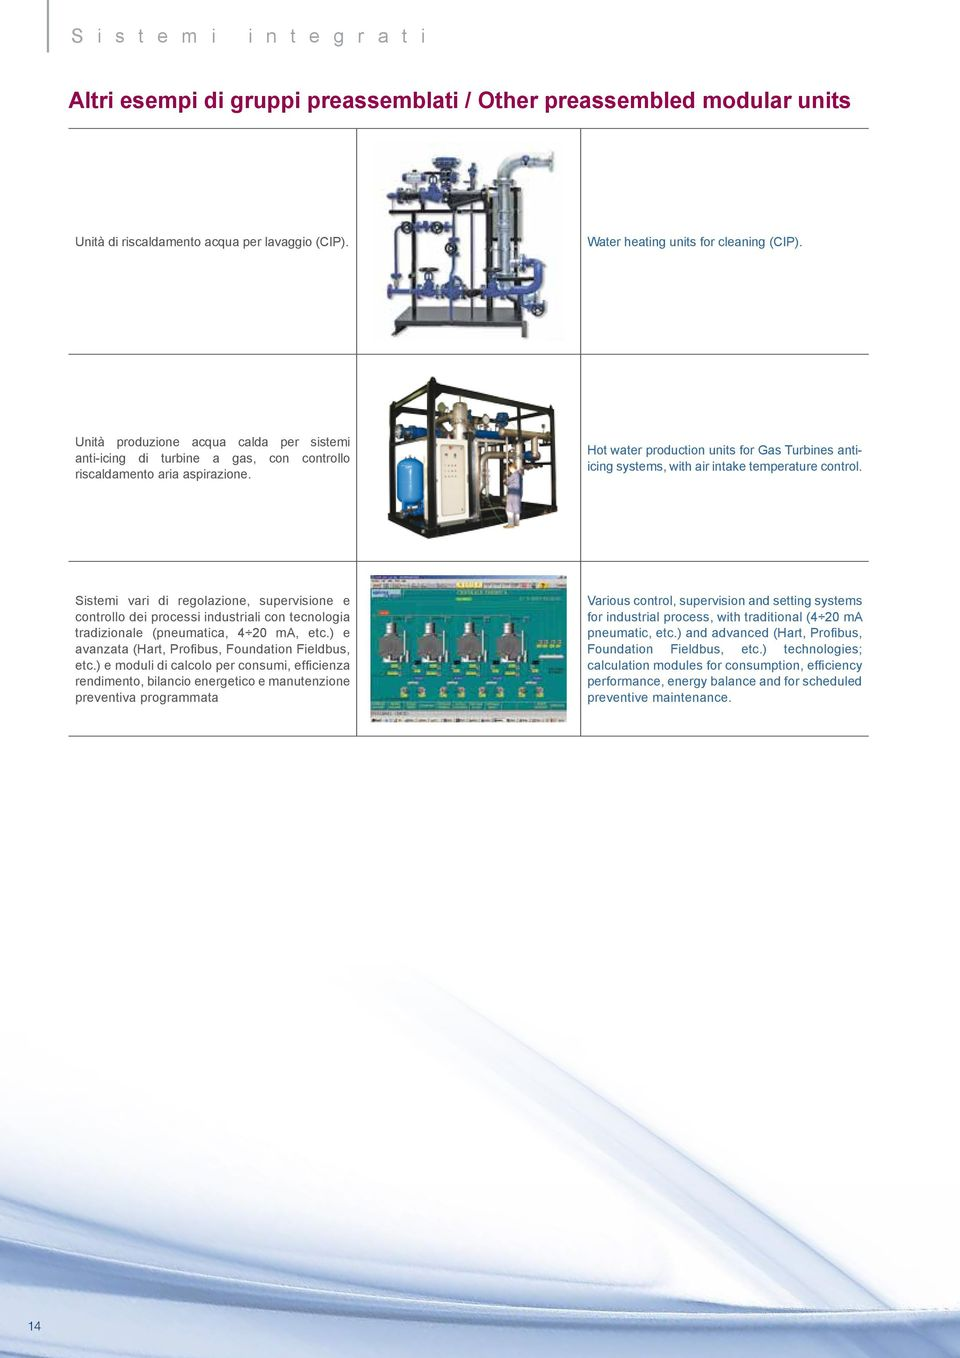 Hot water production units for Gas Turbines antiicing systems, with air intake temperature control.